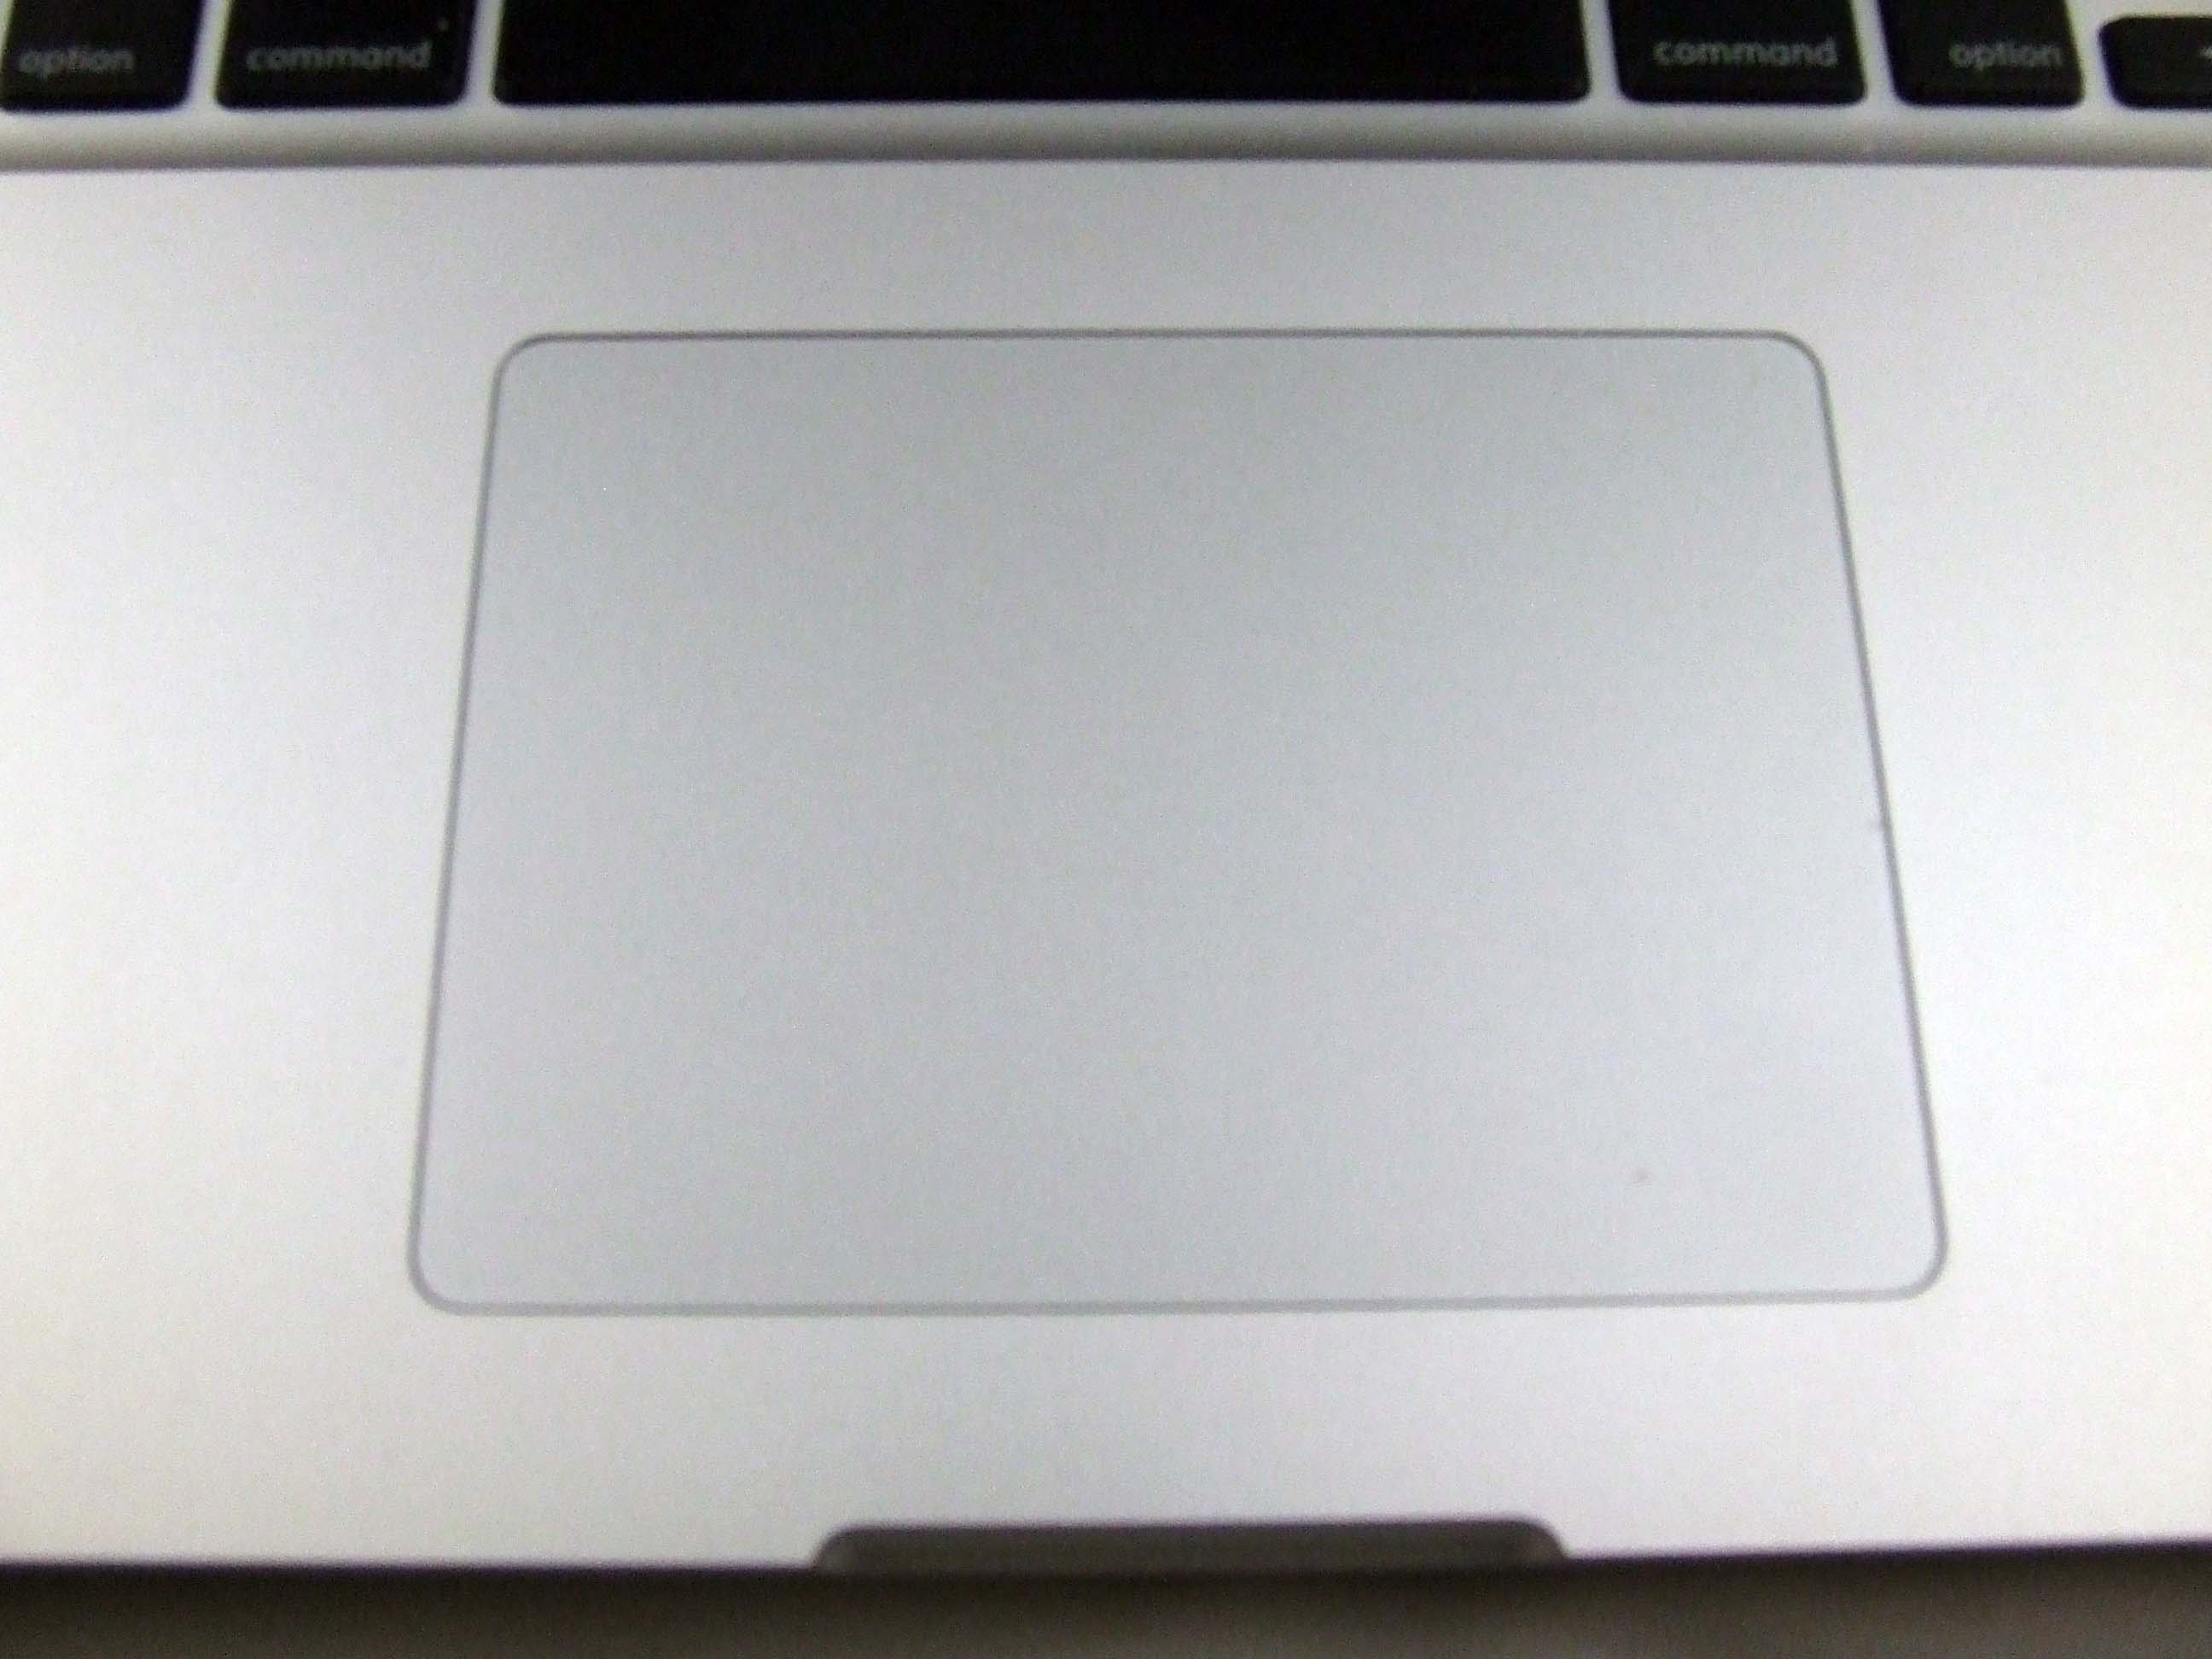 Apple Trackpad Replacement